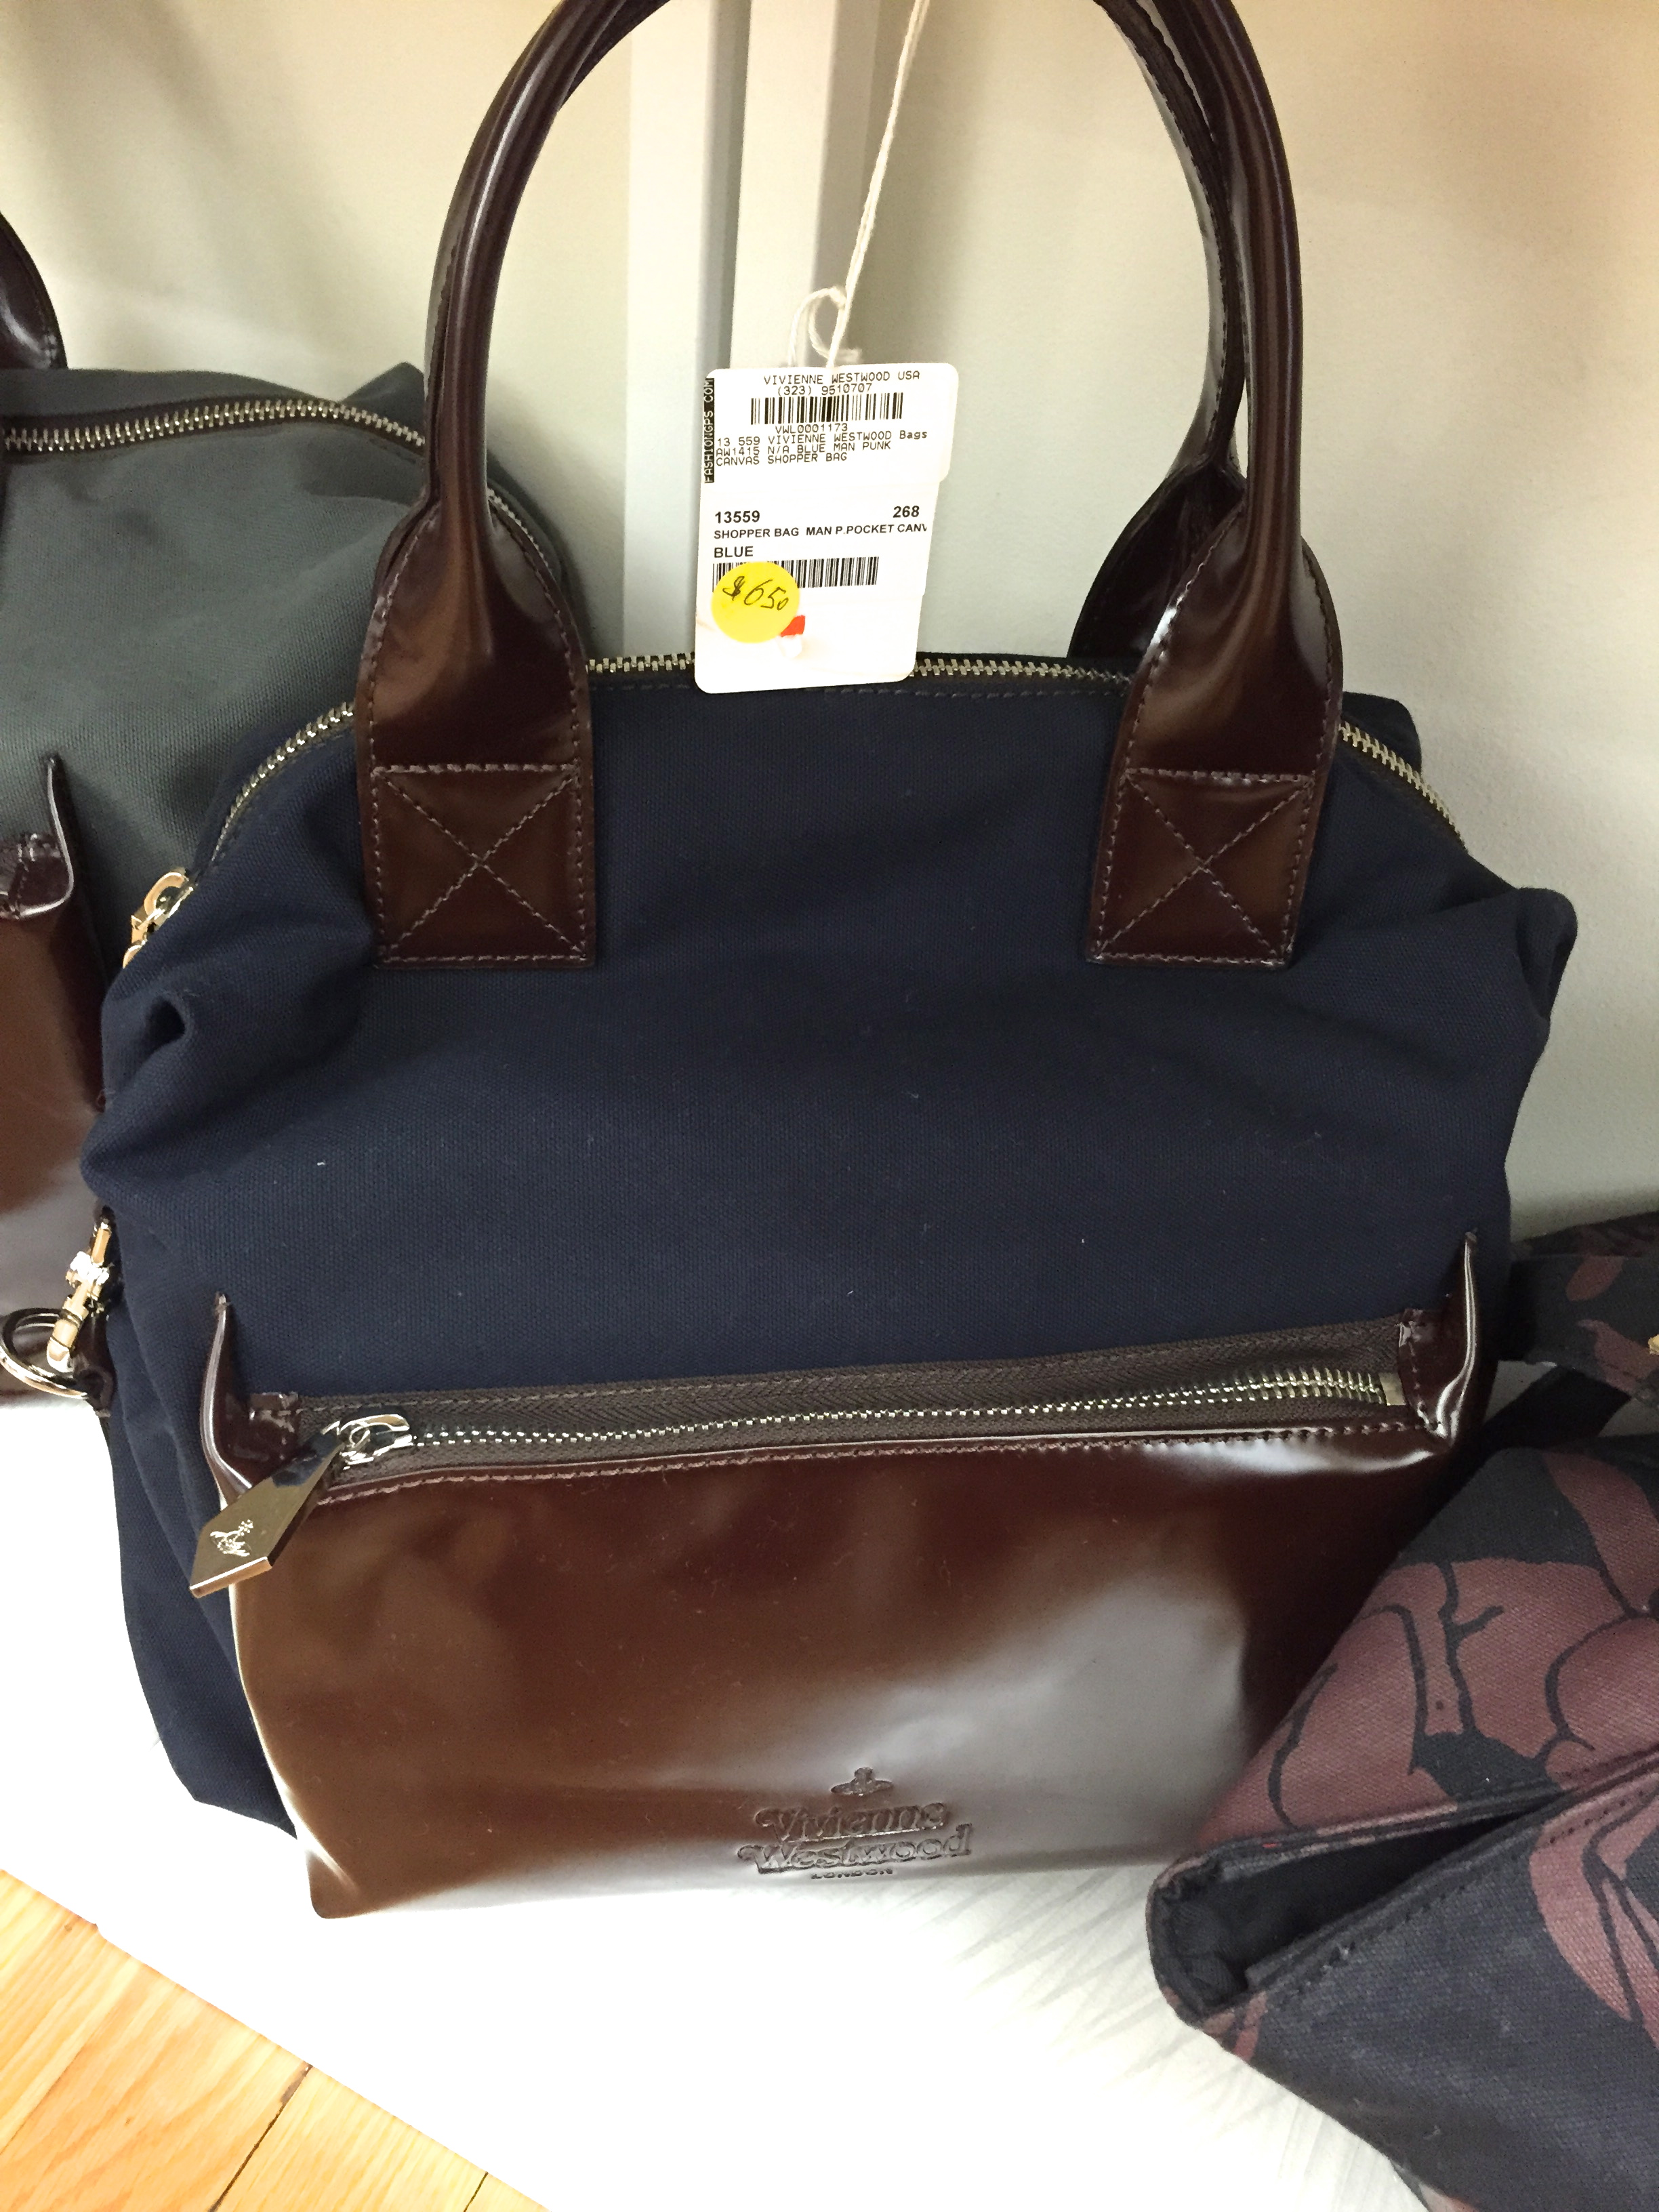 974d2e85c0 Samples Are Up to 90% Off at Vivienne Westwood's Sale - Racked NY